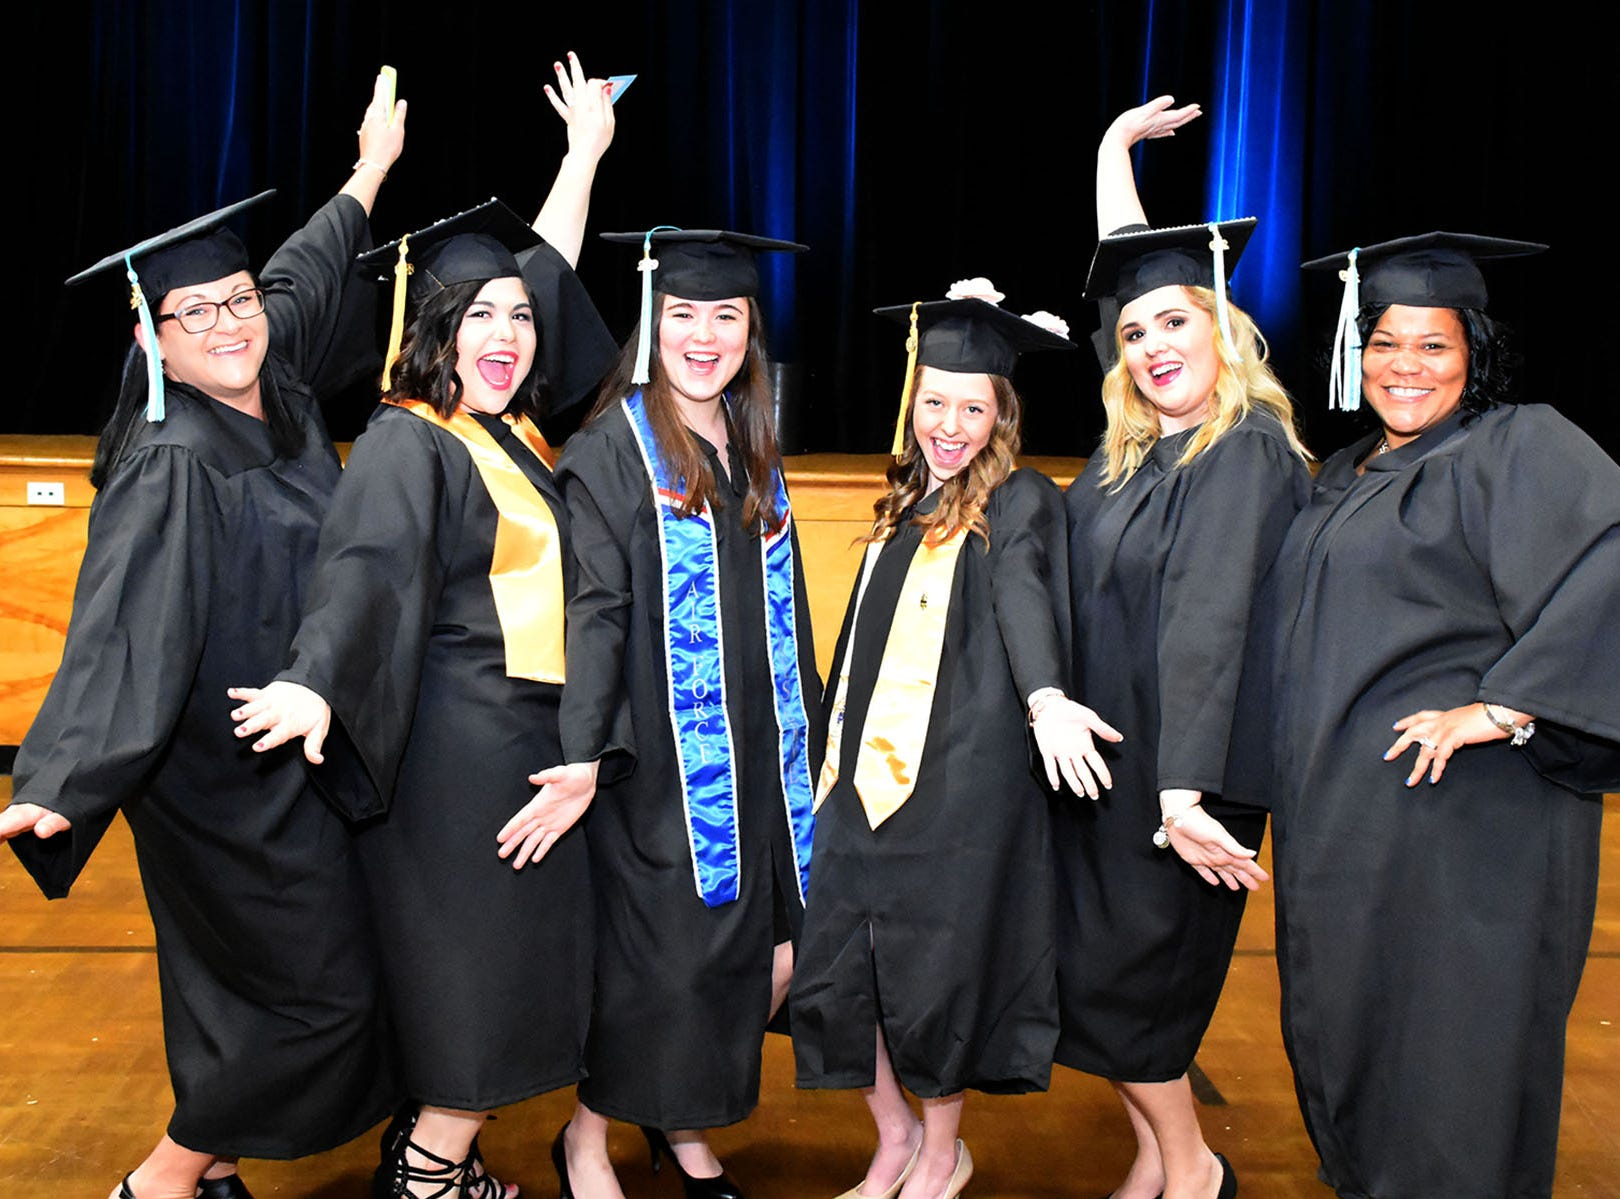 Graduates celebrate after the Wor-Wic Community College commencement exercises at the Wicomico Youth and Civic Center.